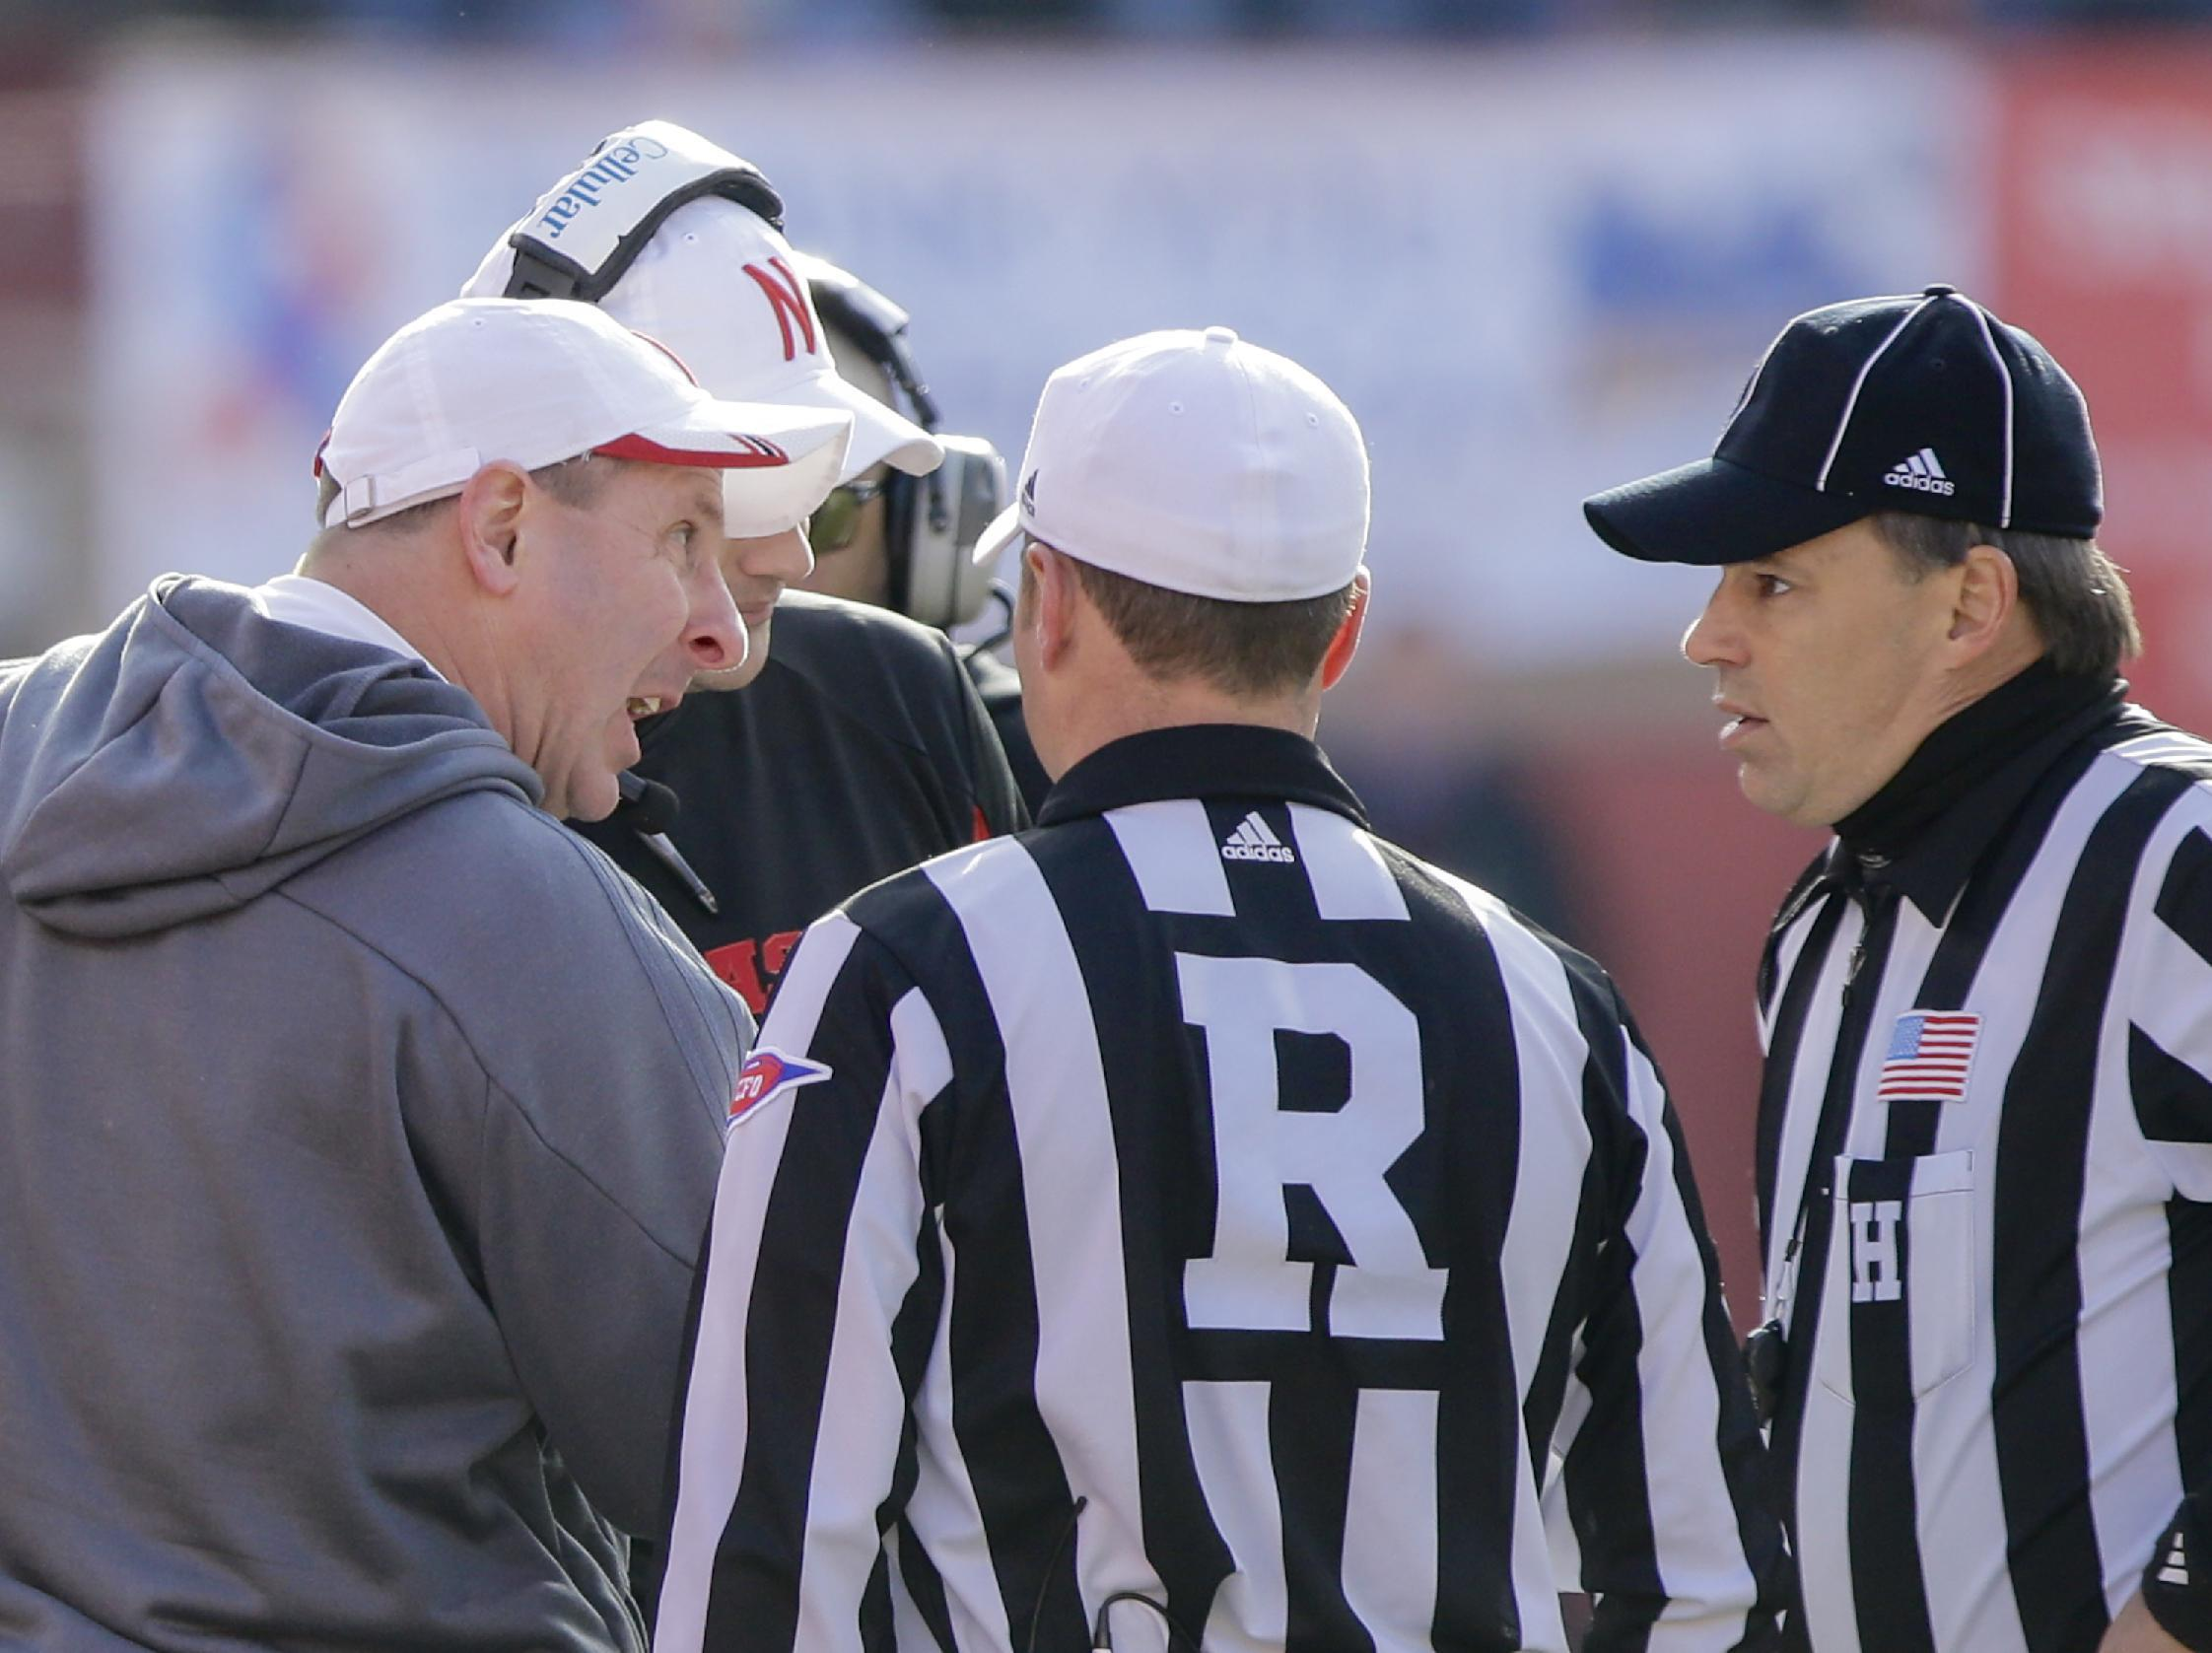 Nebraska head coach Bo Pelini, left, protests a pass interference call to referee Alex Kemp, center, and linesman Steven Matarante, right, in the third quarter of an NCAA college football game against Iowa in Lincoln, Neb., Friday, Nov. 29, 2013. Iowa won 38-17. (AP Photo/Nati Harnik)